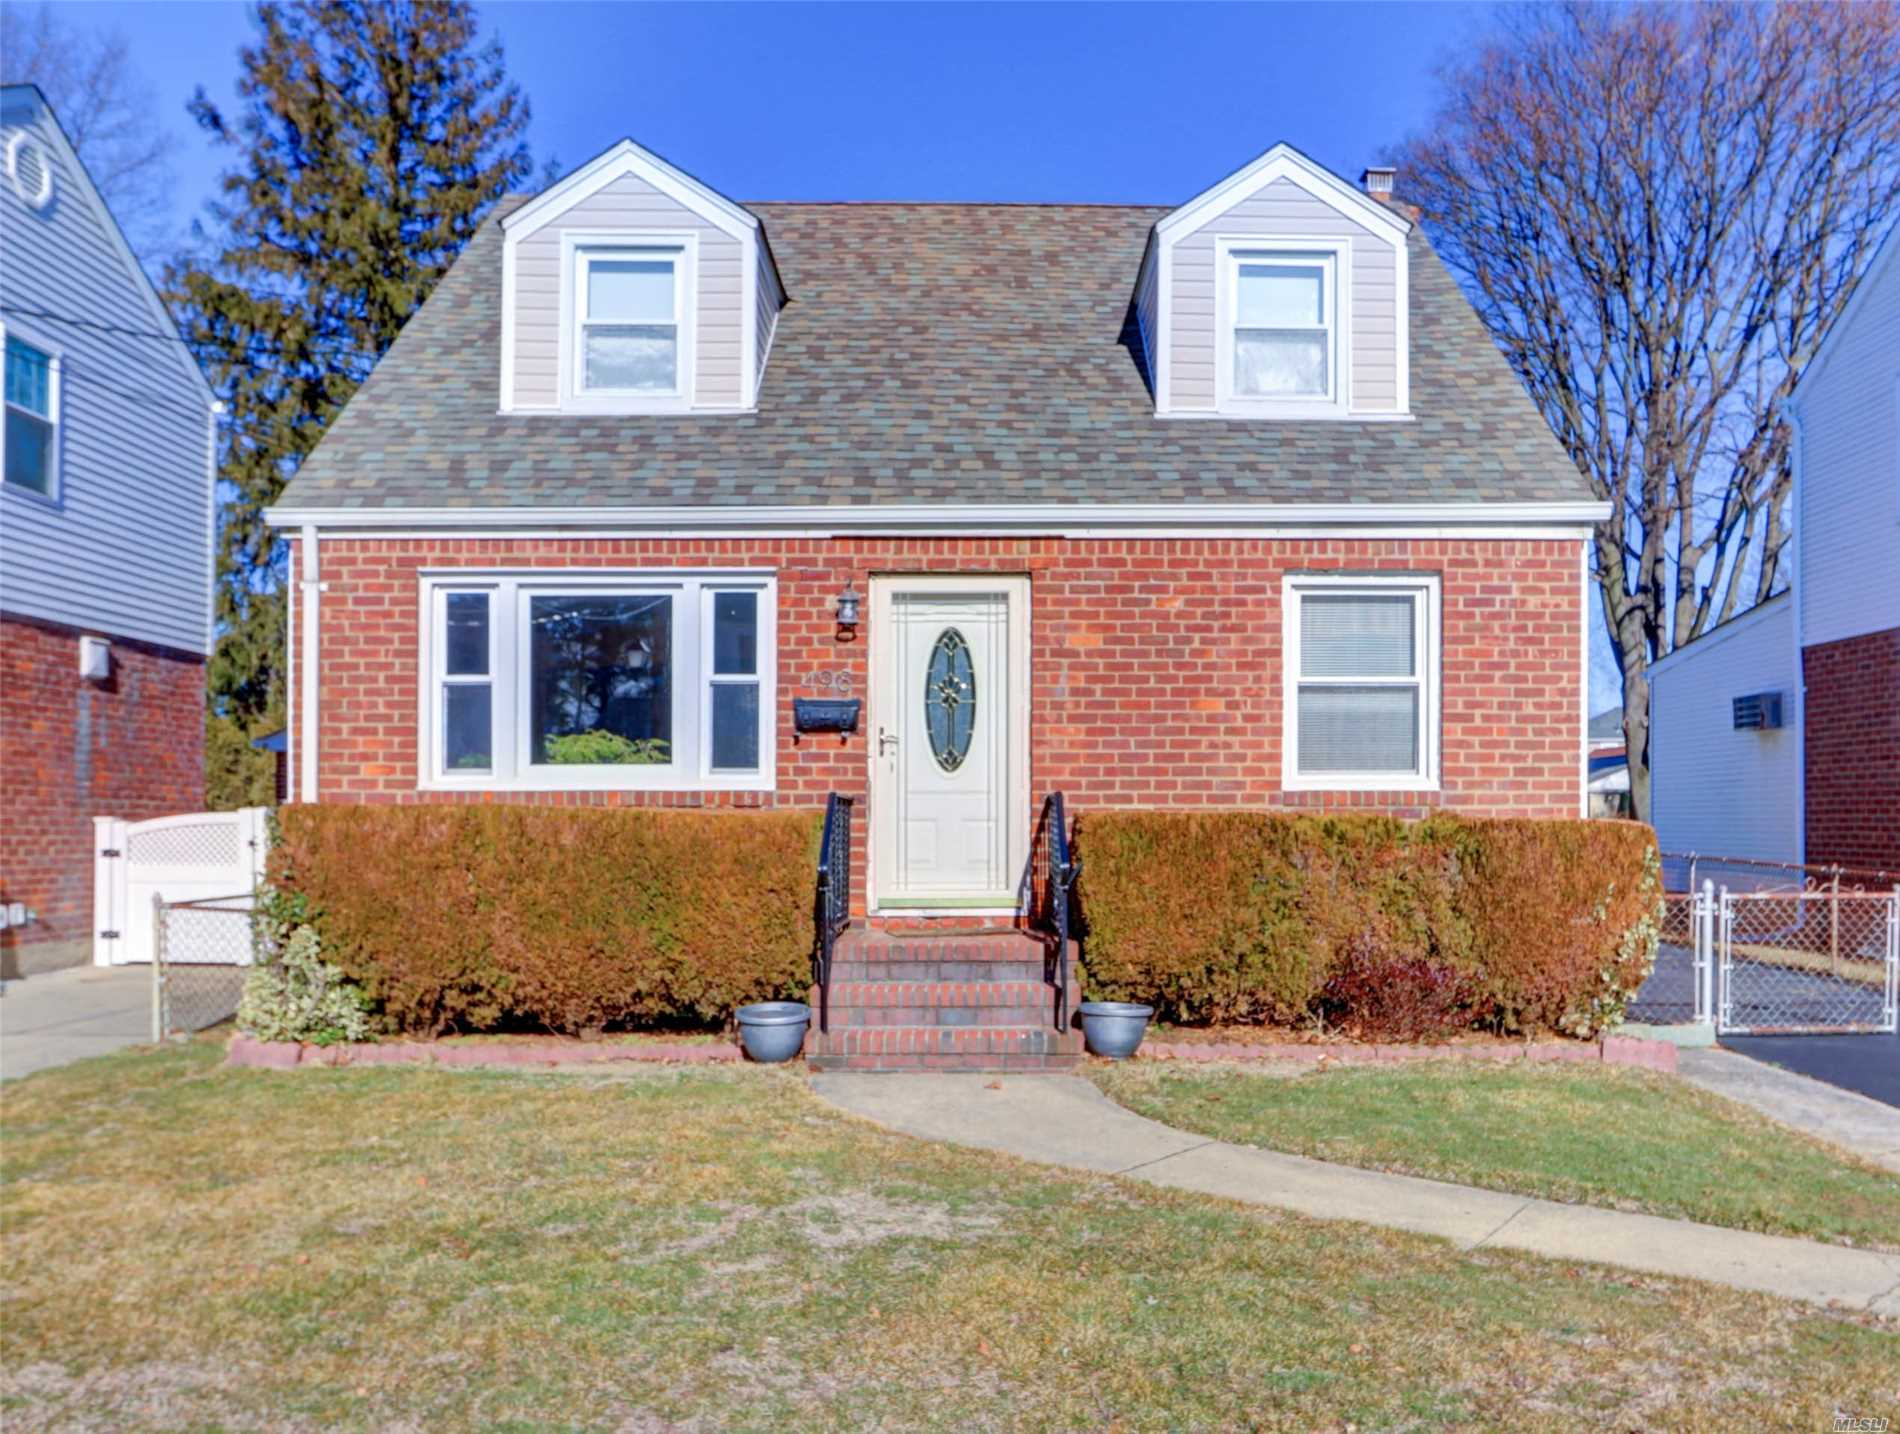 Wide Lane Cape Brick House, 4 Bedrooms, Living Room, Formal Dinning Room, New Kitchen, 2 New Full Bath, New Roof, Detached Car Garage, Full Finished Basement, Laundry Room, Walk-In Closets.